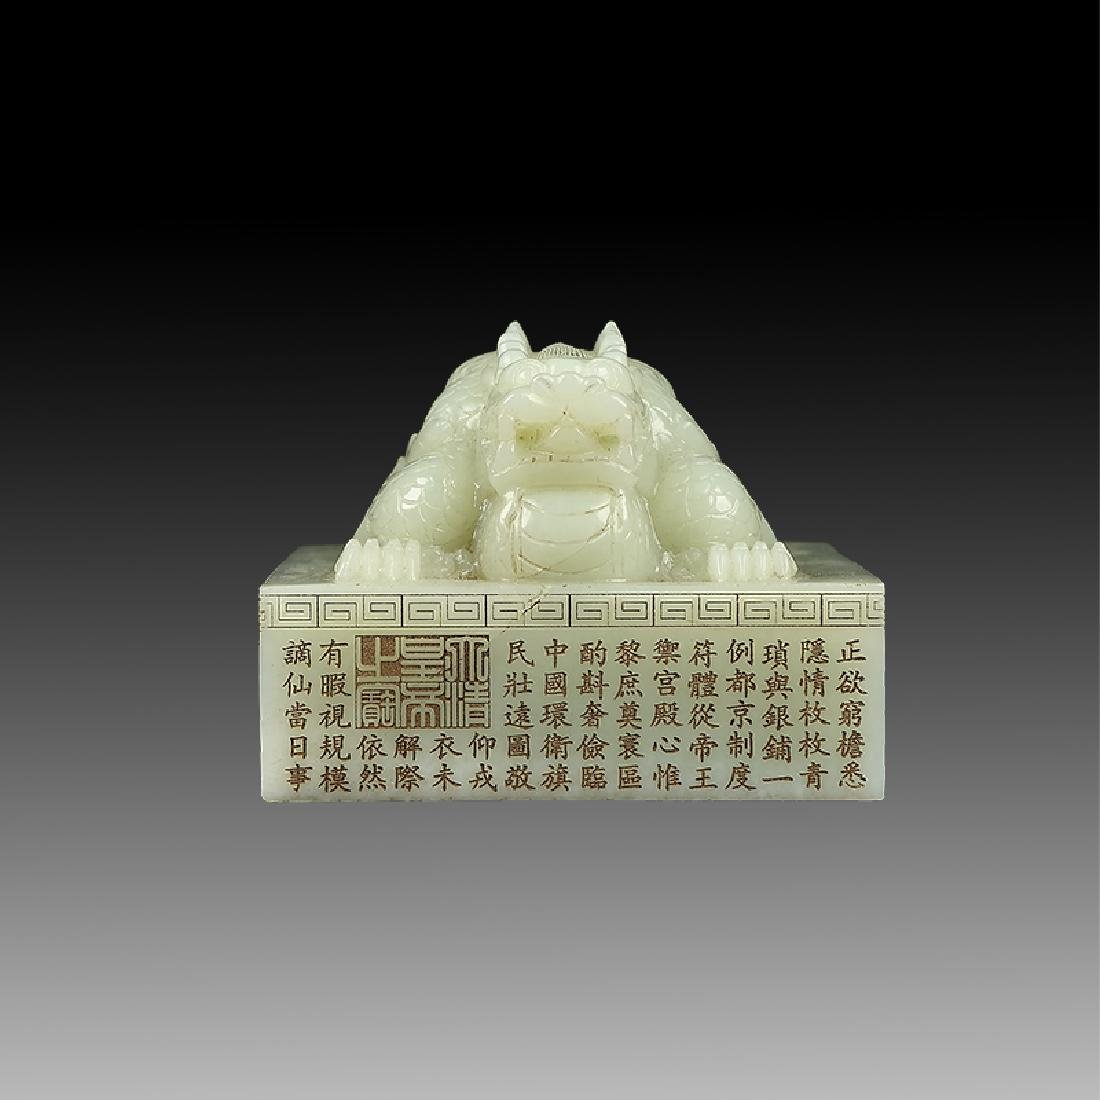 Chinese Qing Dynasty White Hetian Jade Dragon Seal - 6